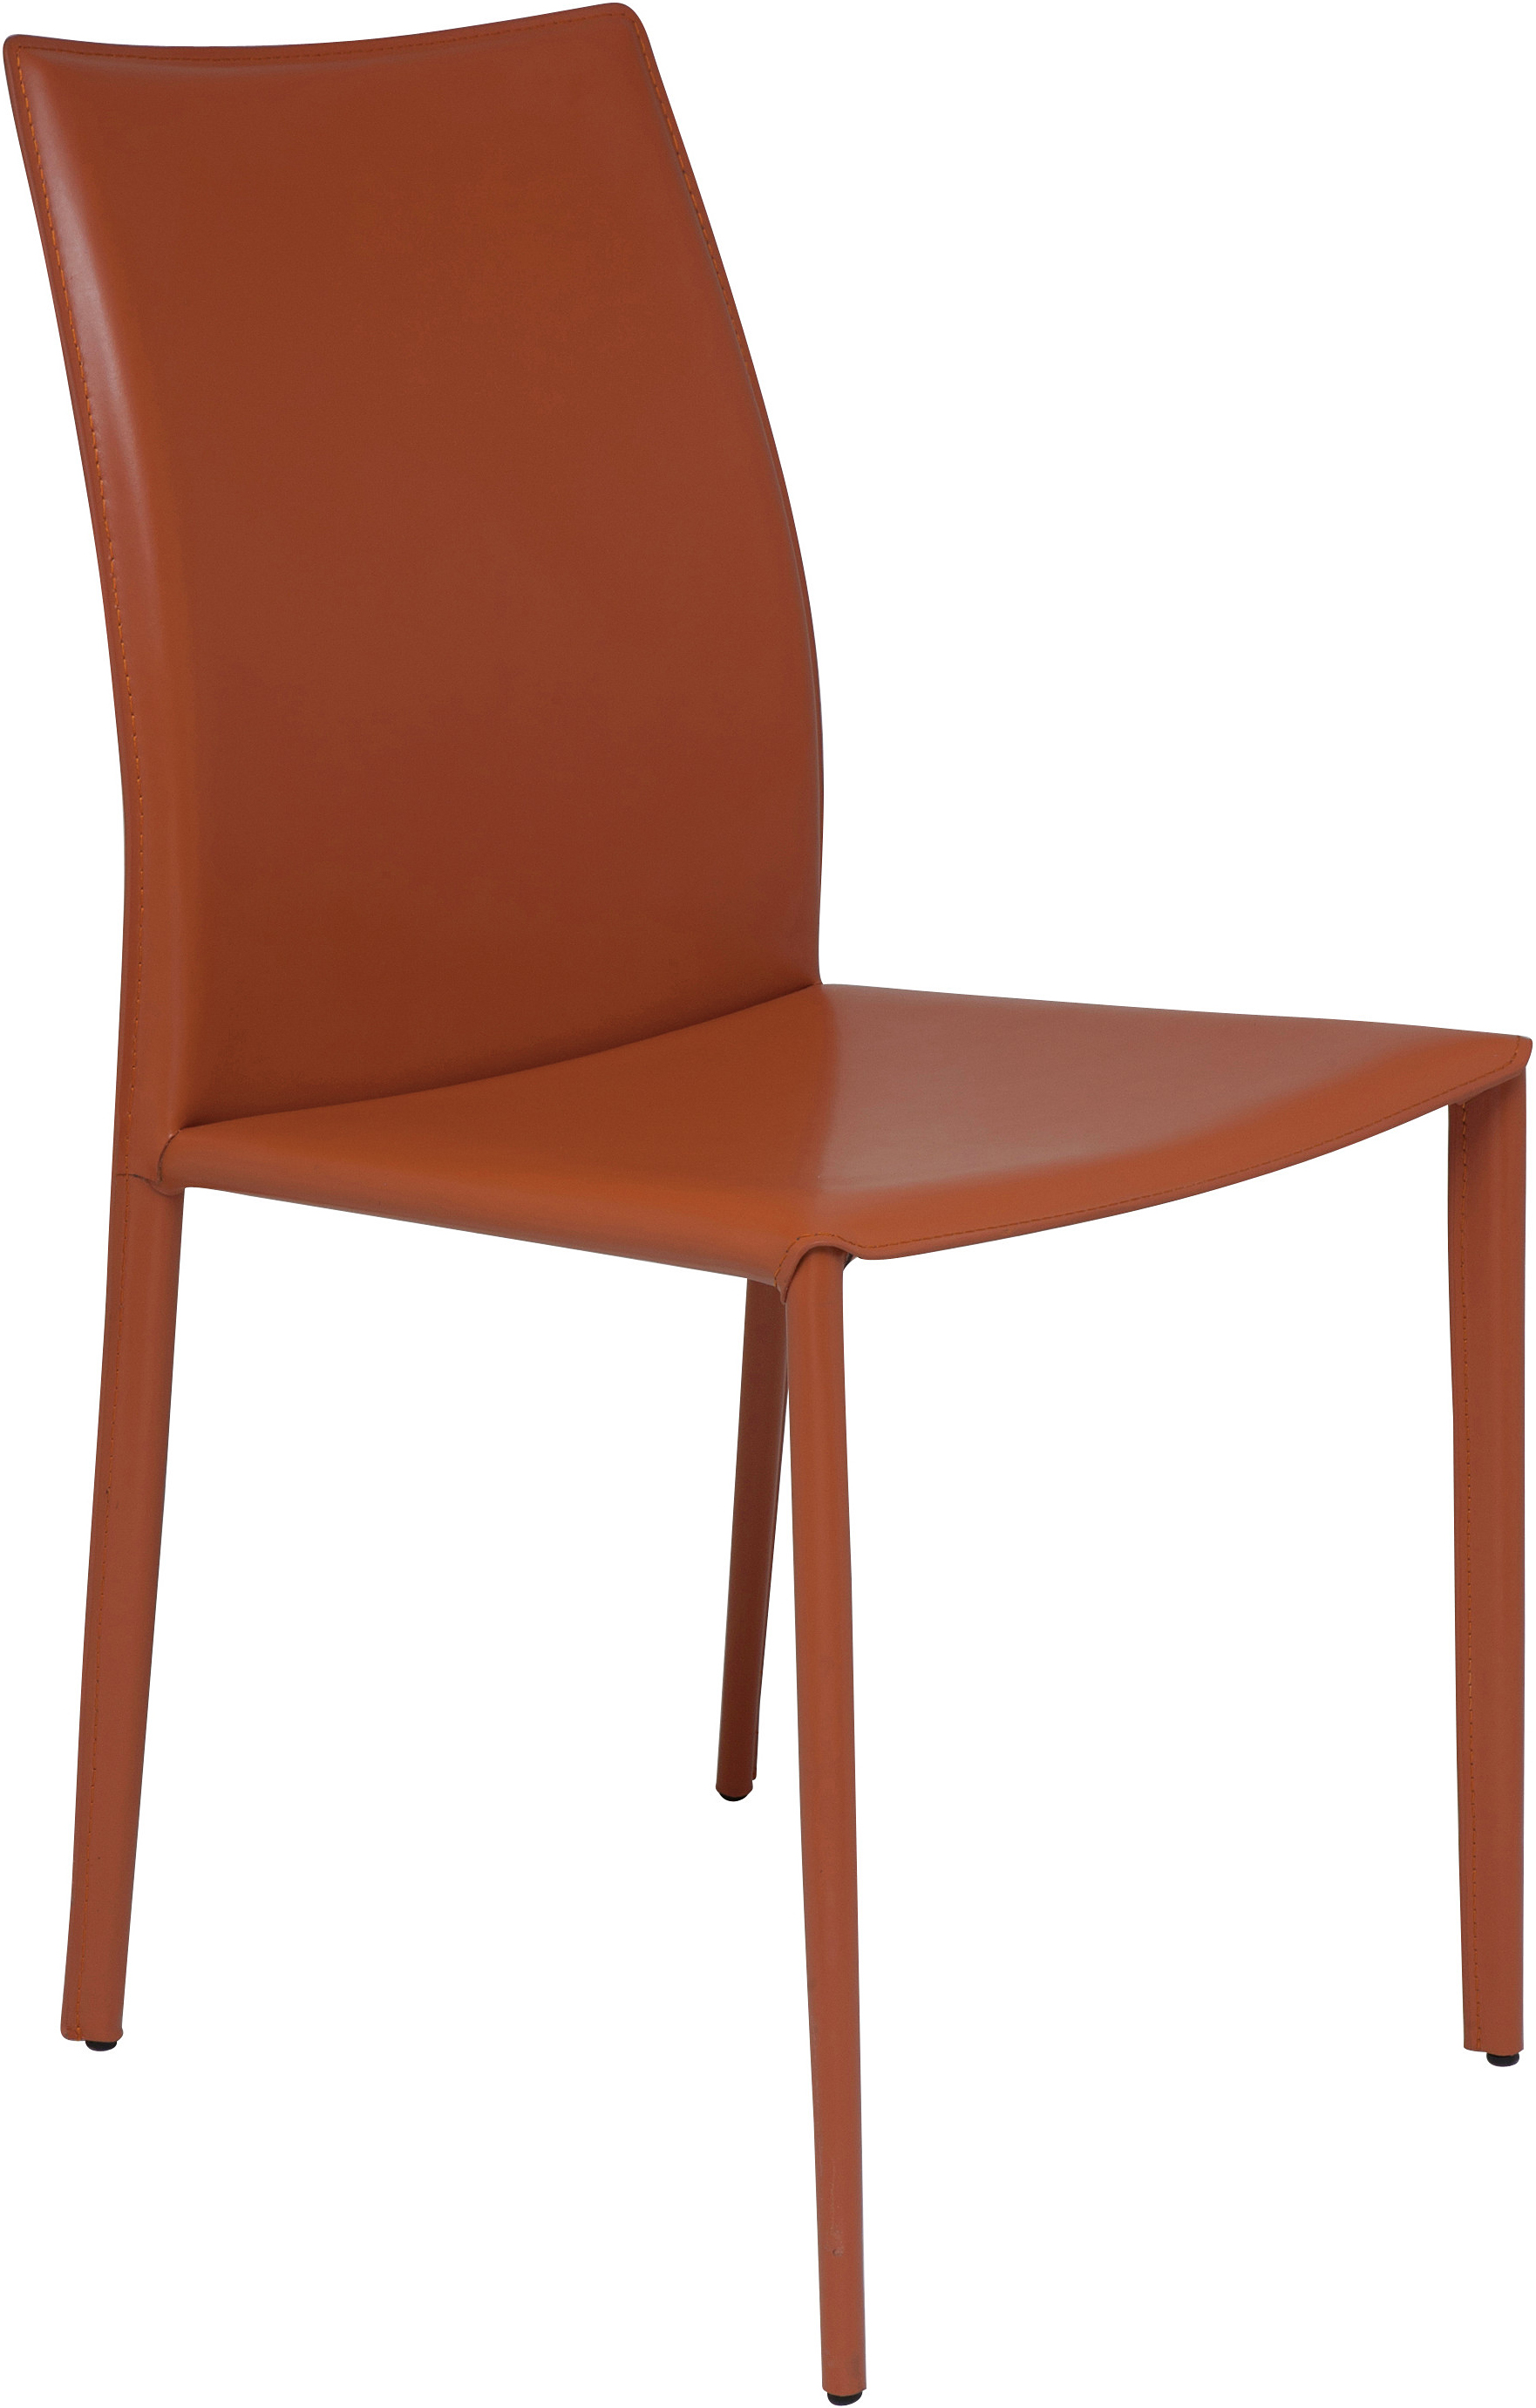 the nuevo sienna dining chair in ochre